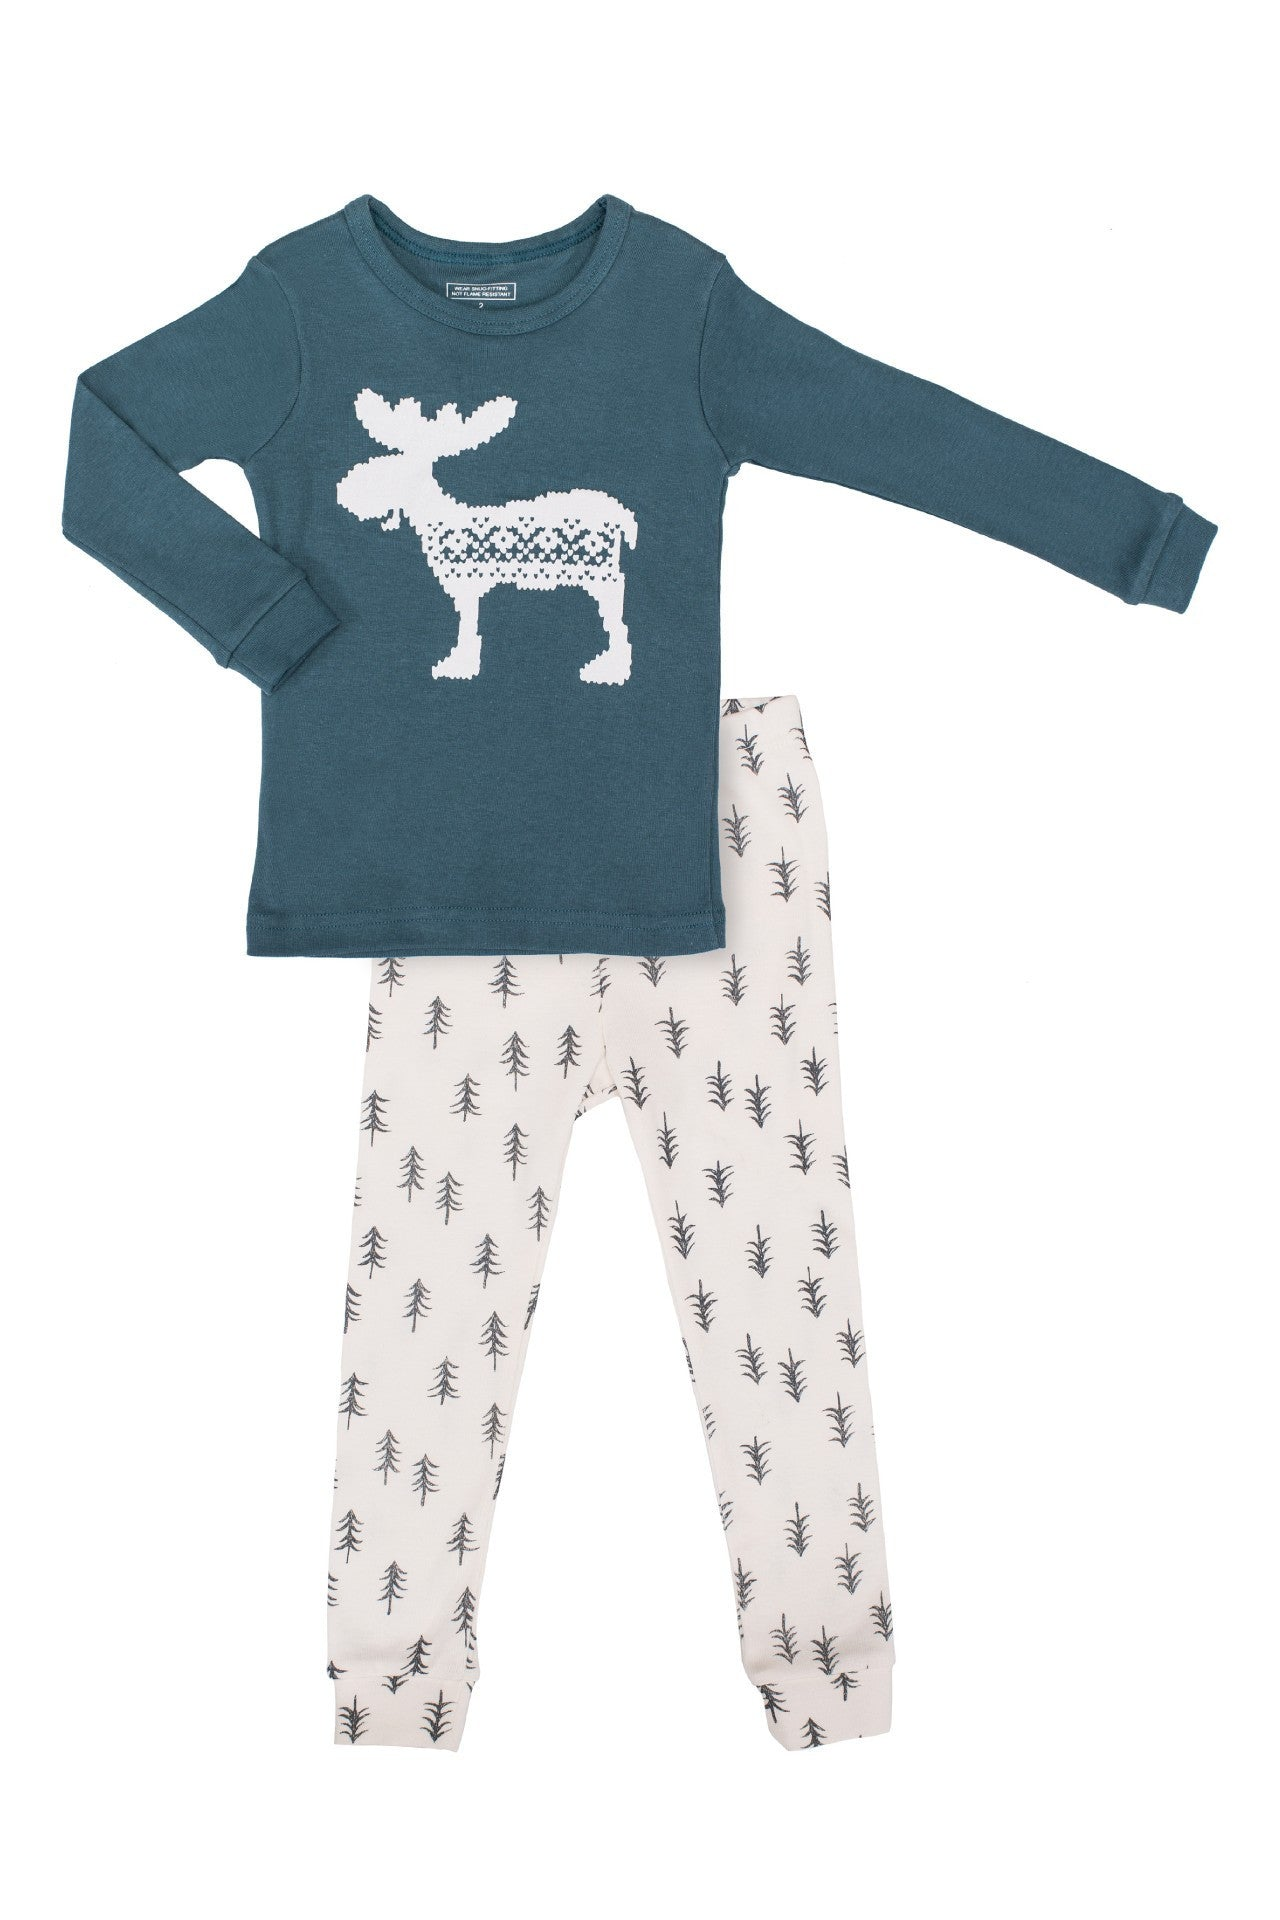 30s Cotton Count - Lightest Pajamas - Holey Moose!